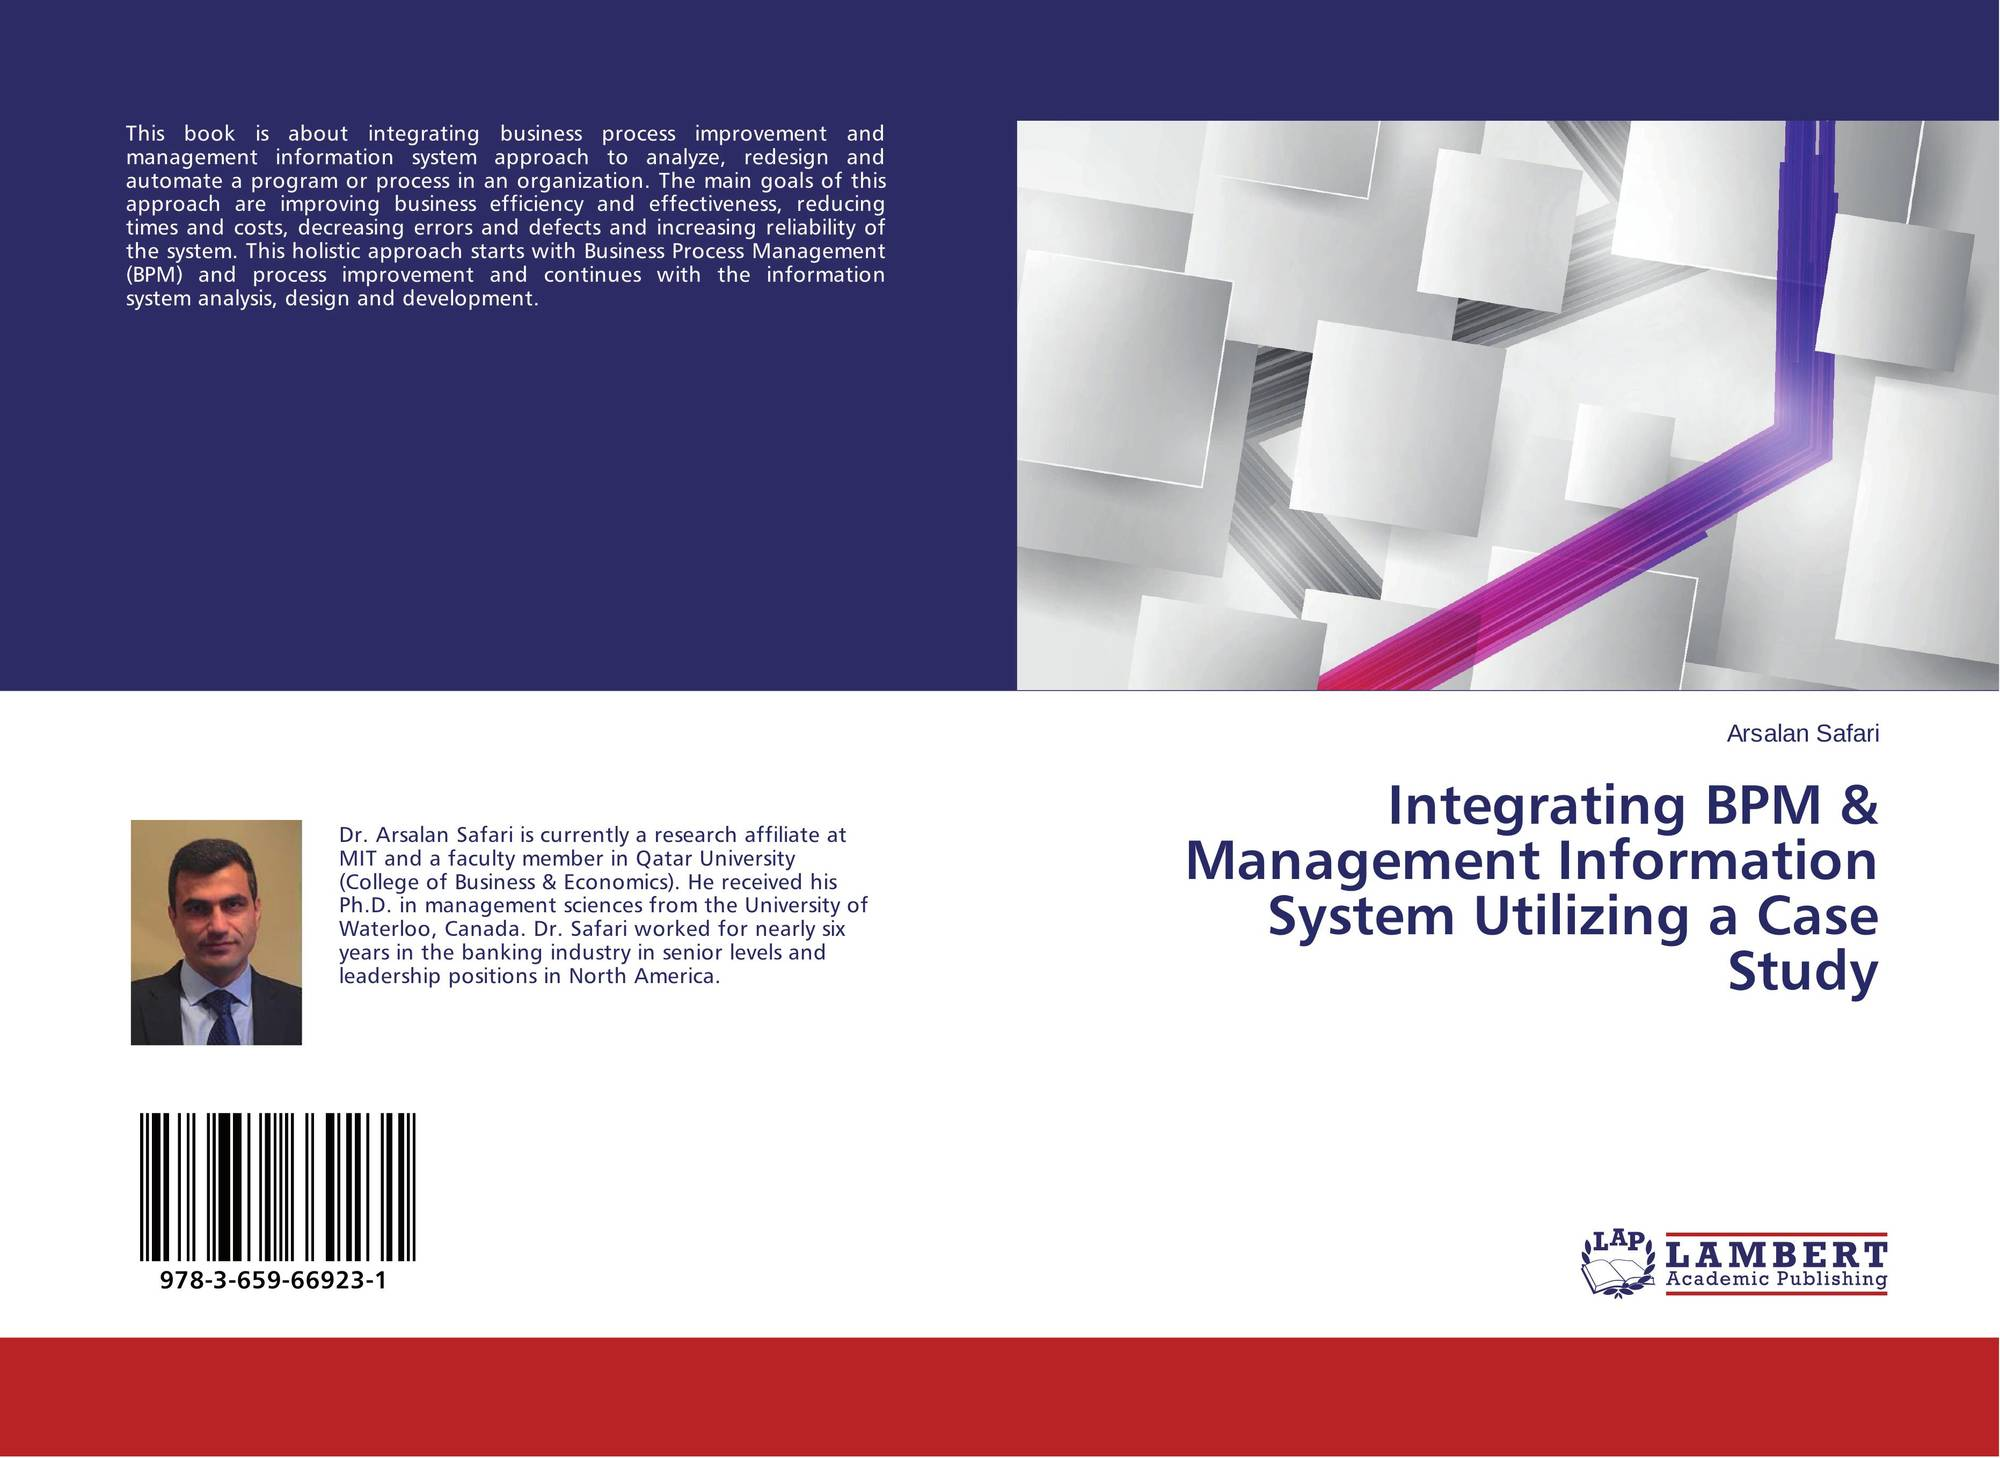 management information system case study Working paper no 5 common with other developing education management information system: a short case study of nigeria october 2006 working paper no 5, 2006.